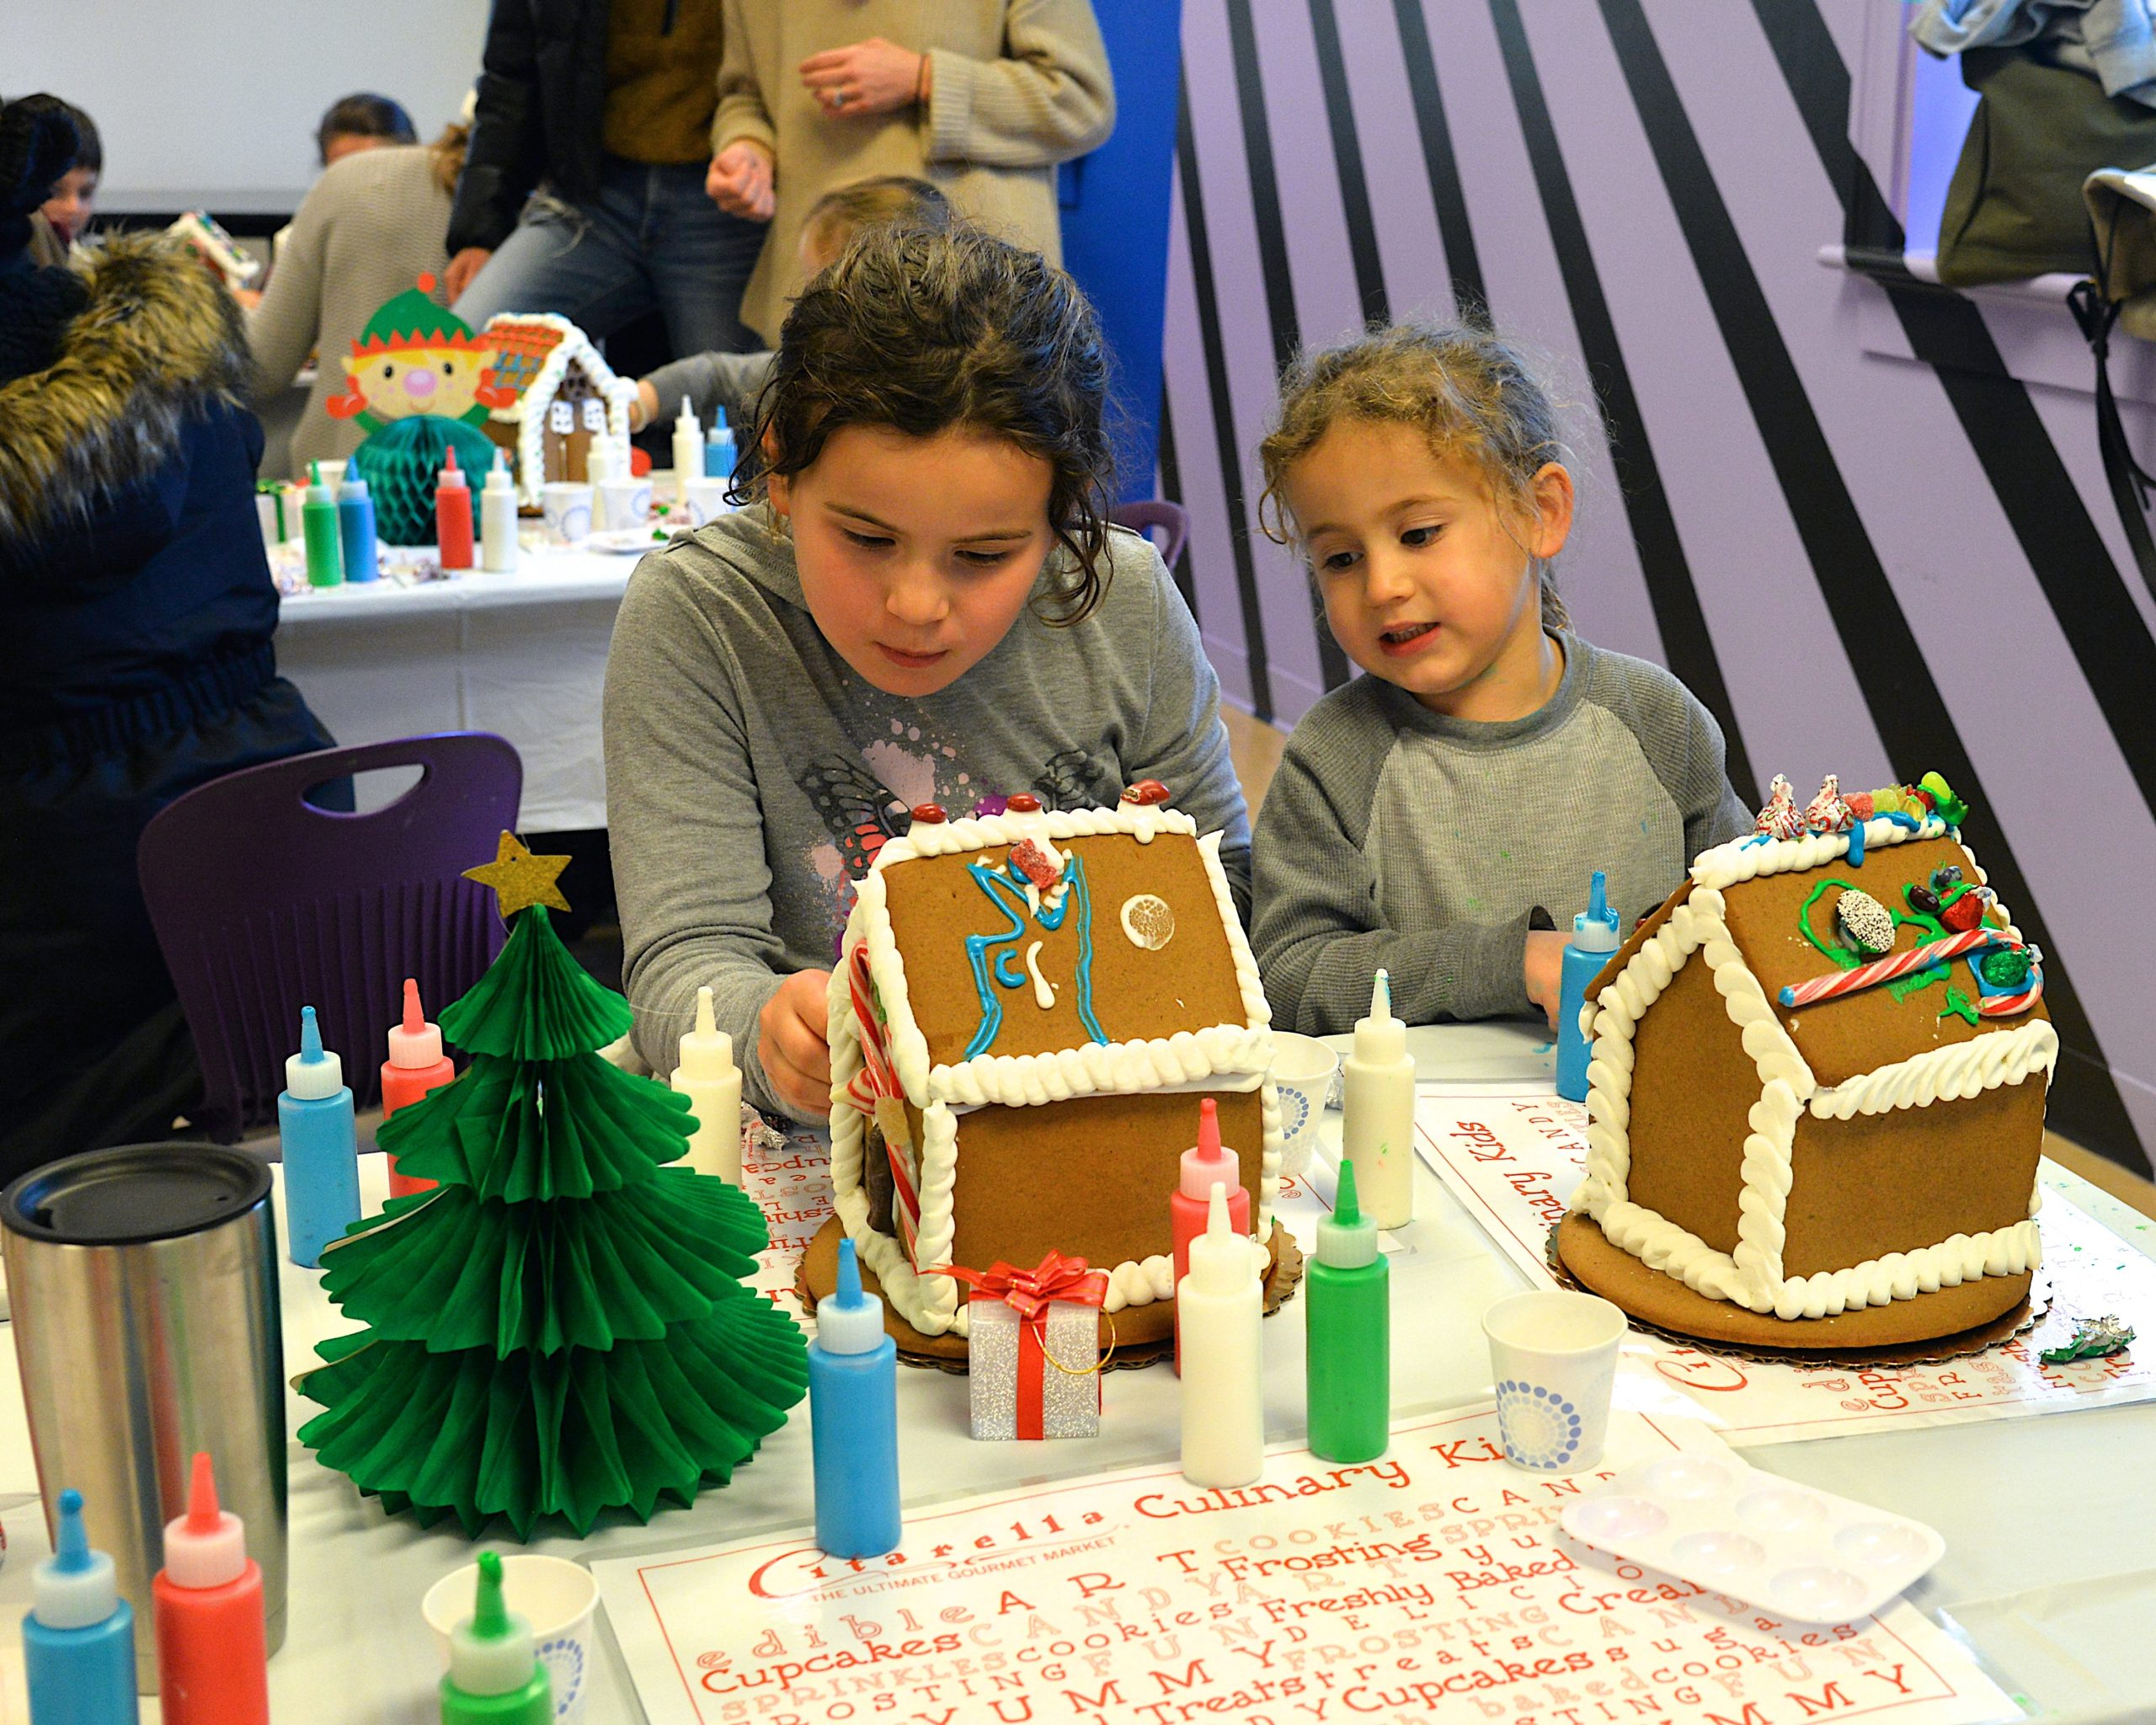 Guild Hall offered an opportunity to get in the holiday spirit by making gingerbread houses on Saturday. Wesley and Louie Bull intent on their work. KYRIL BROMLEY